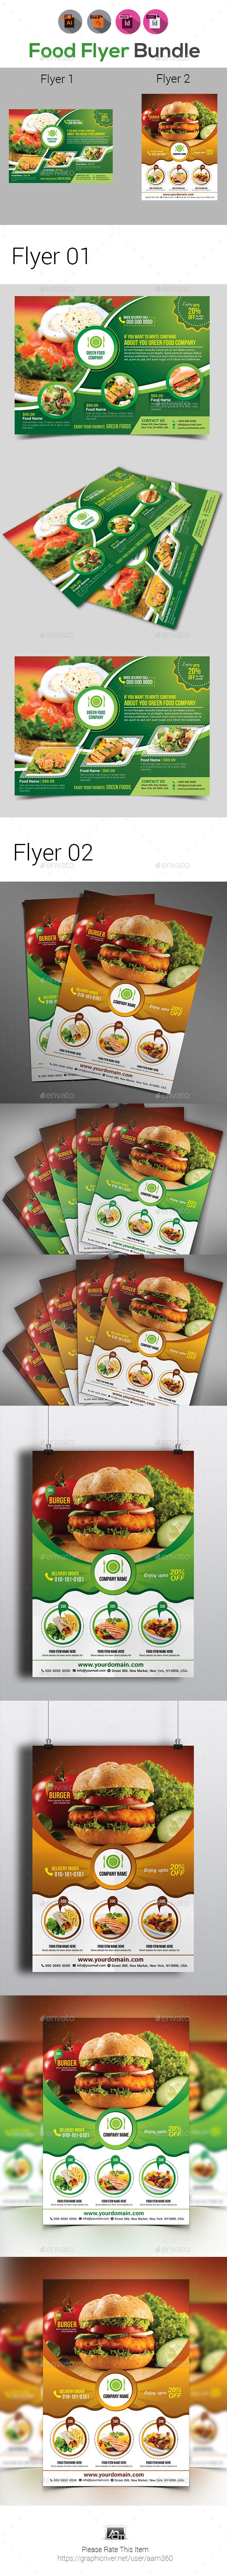 Food Flyer Templates  Flyer Template Adobe Indesign And Adobe